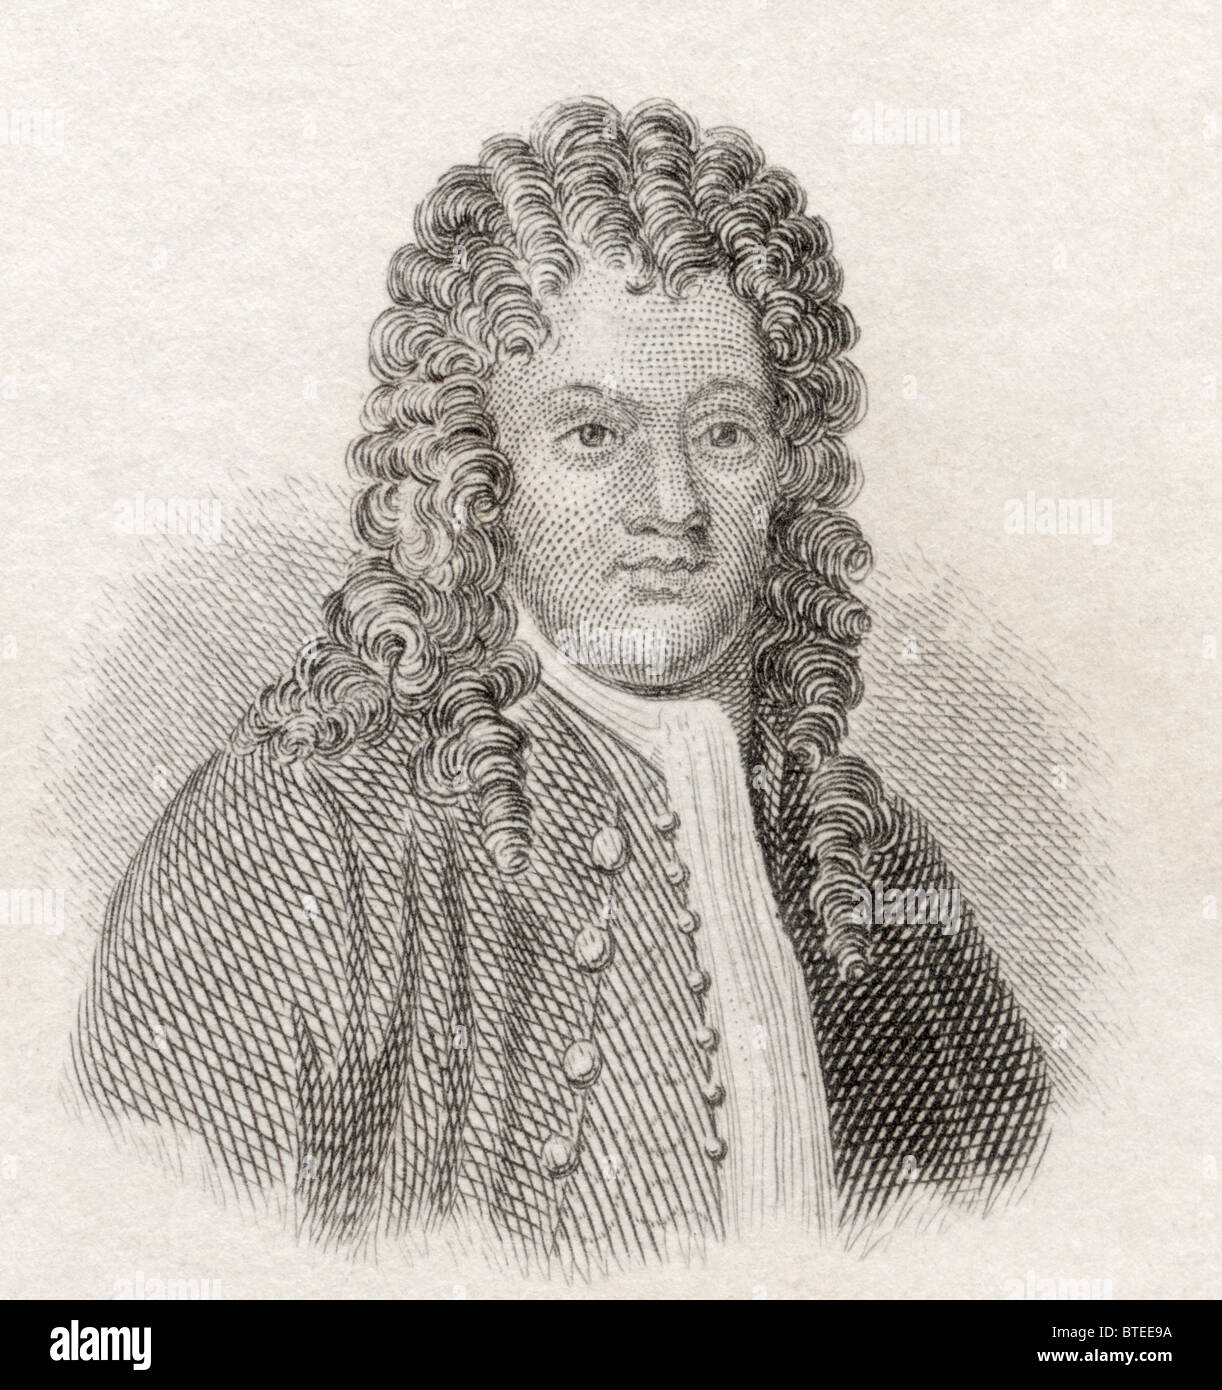 Sir Brook Taylor, 1685 to 1731. English mathematician, best known for Taylor's theorem and the Taylor series. - Stock Image